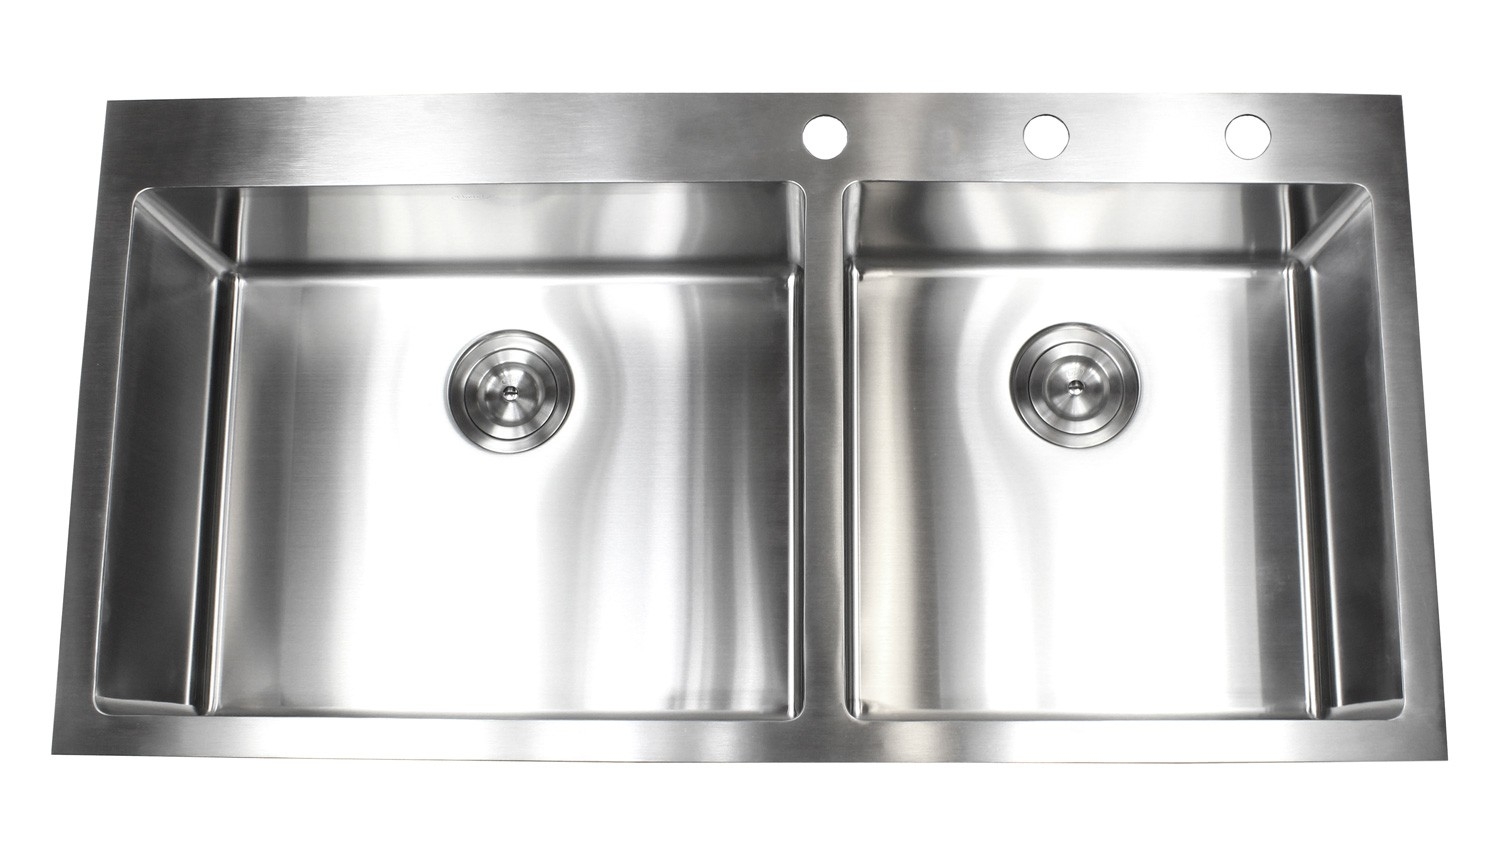 43 inch drop in stainless steel double bowl kitchen sink 15mm radius design 43 inch top mount   drop in stainless steel double bowl kitchen      rh   cbath com